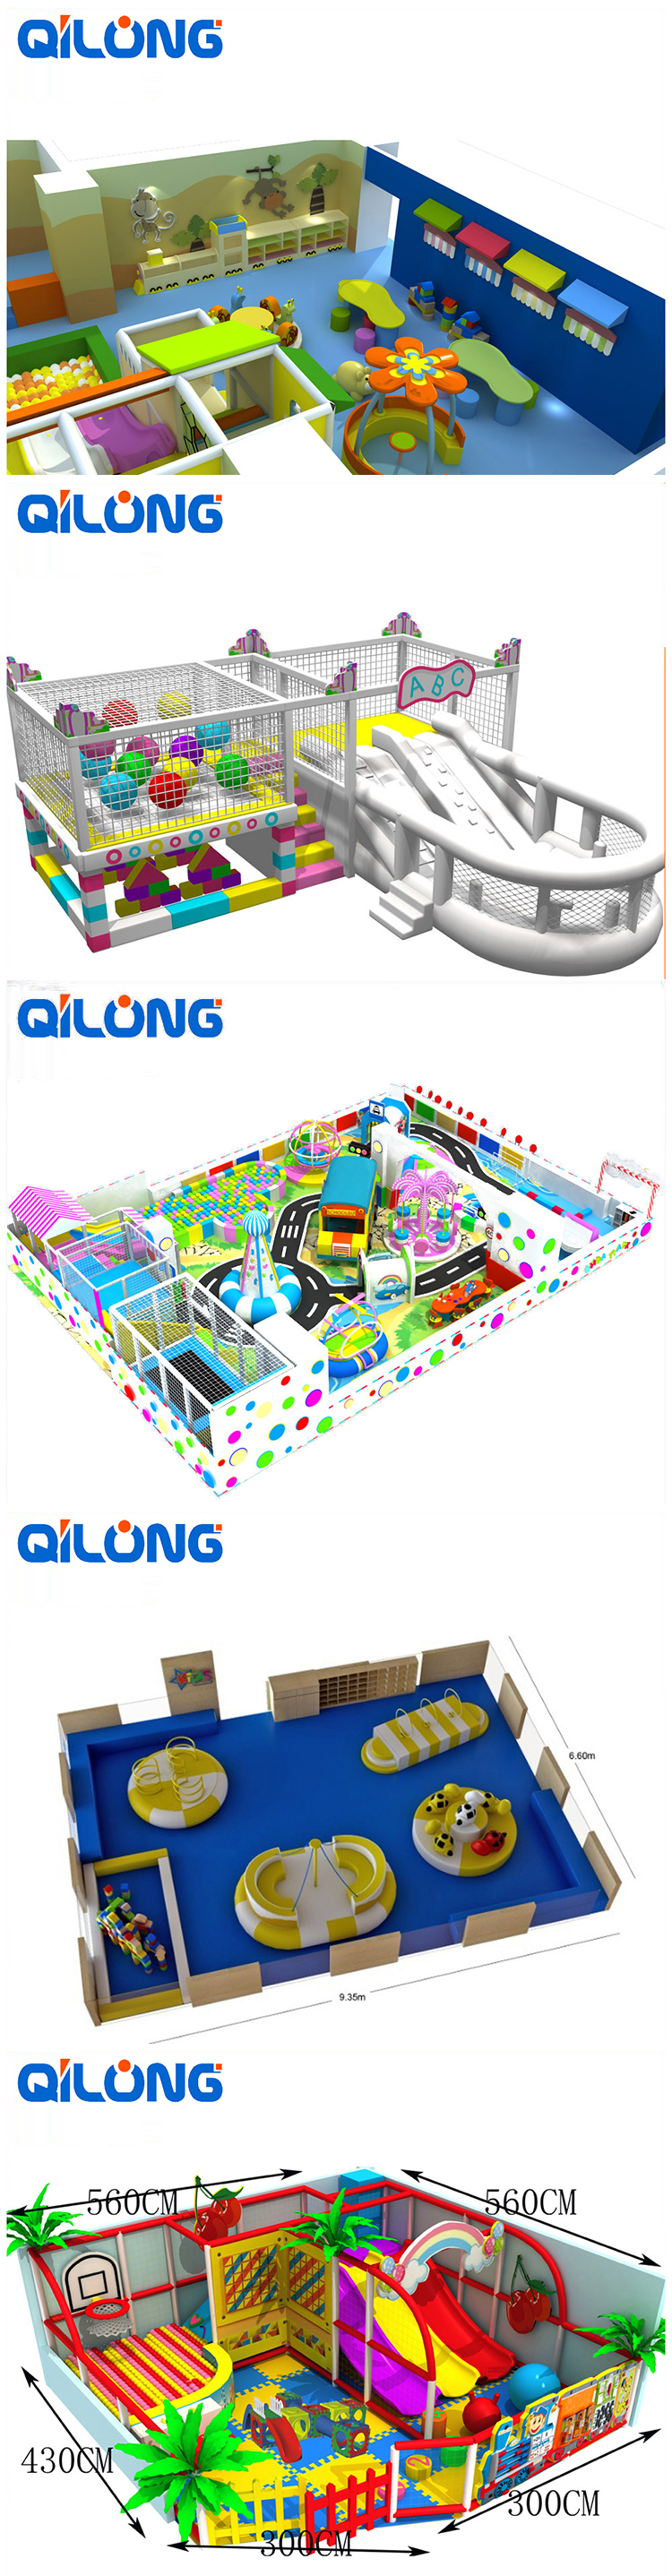 Playground Accessories Children Indoor Soft Play Area